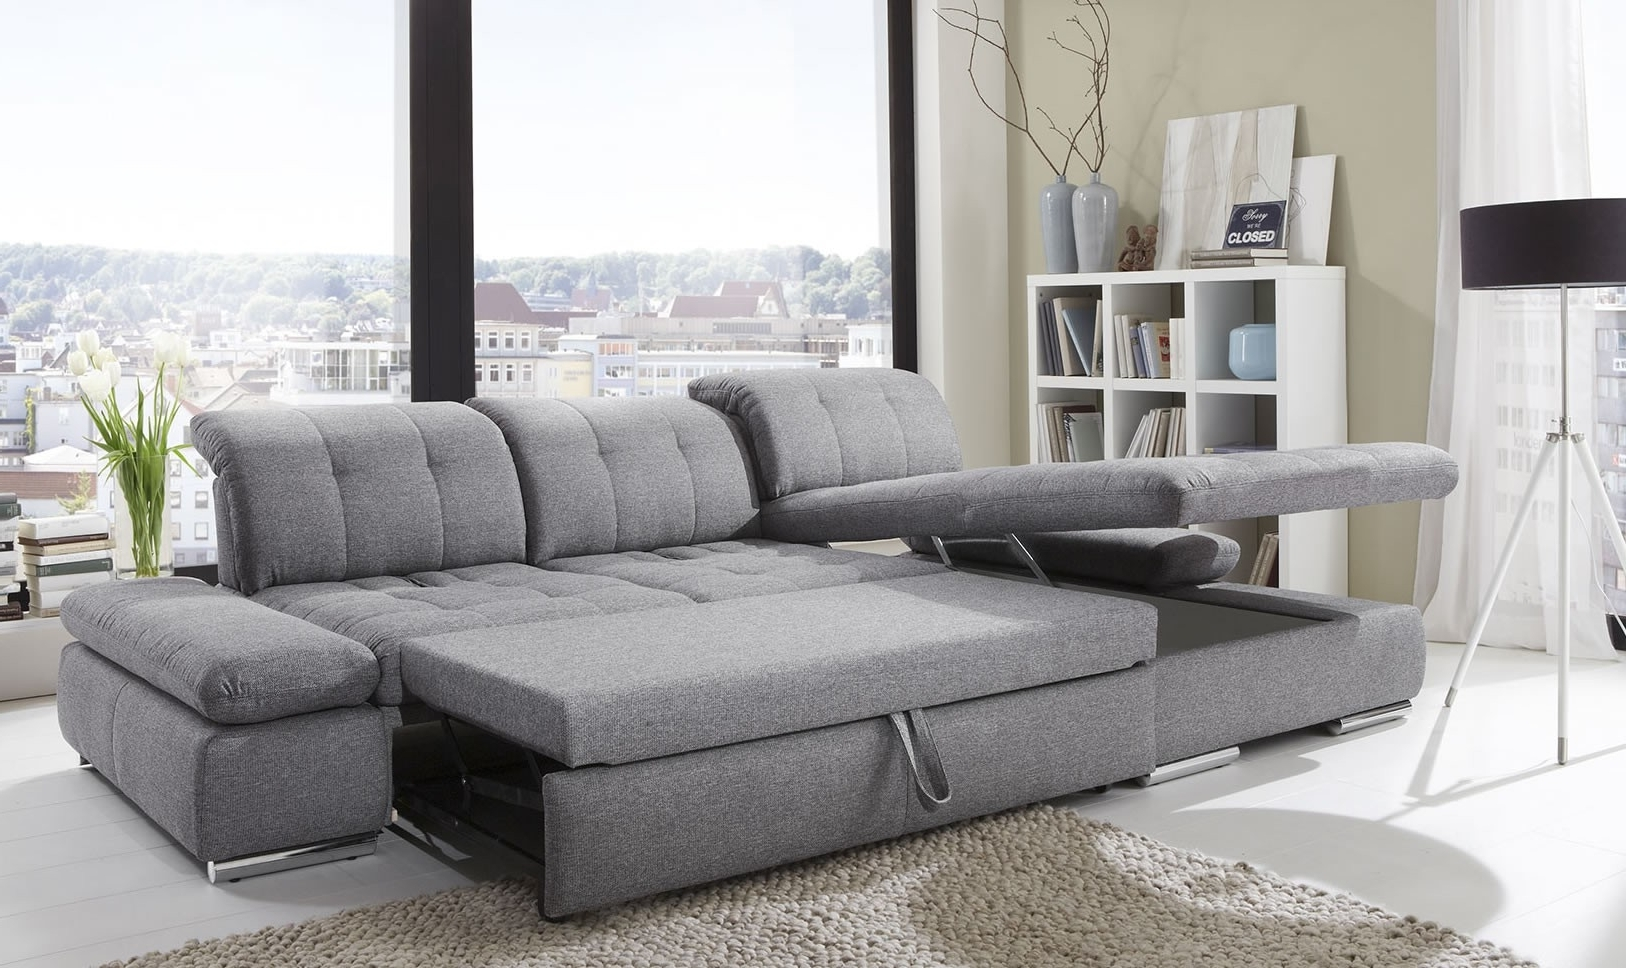 Sectional Sleeper Sofa Is Cool Sleeper Furniture Is Cool Throughout Widely Used Sleeper Sectional Sofas (View 20 of 20)